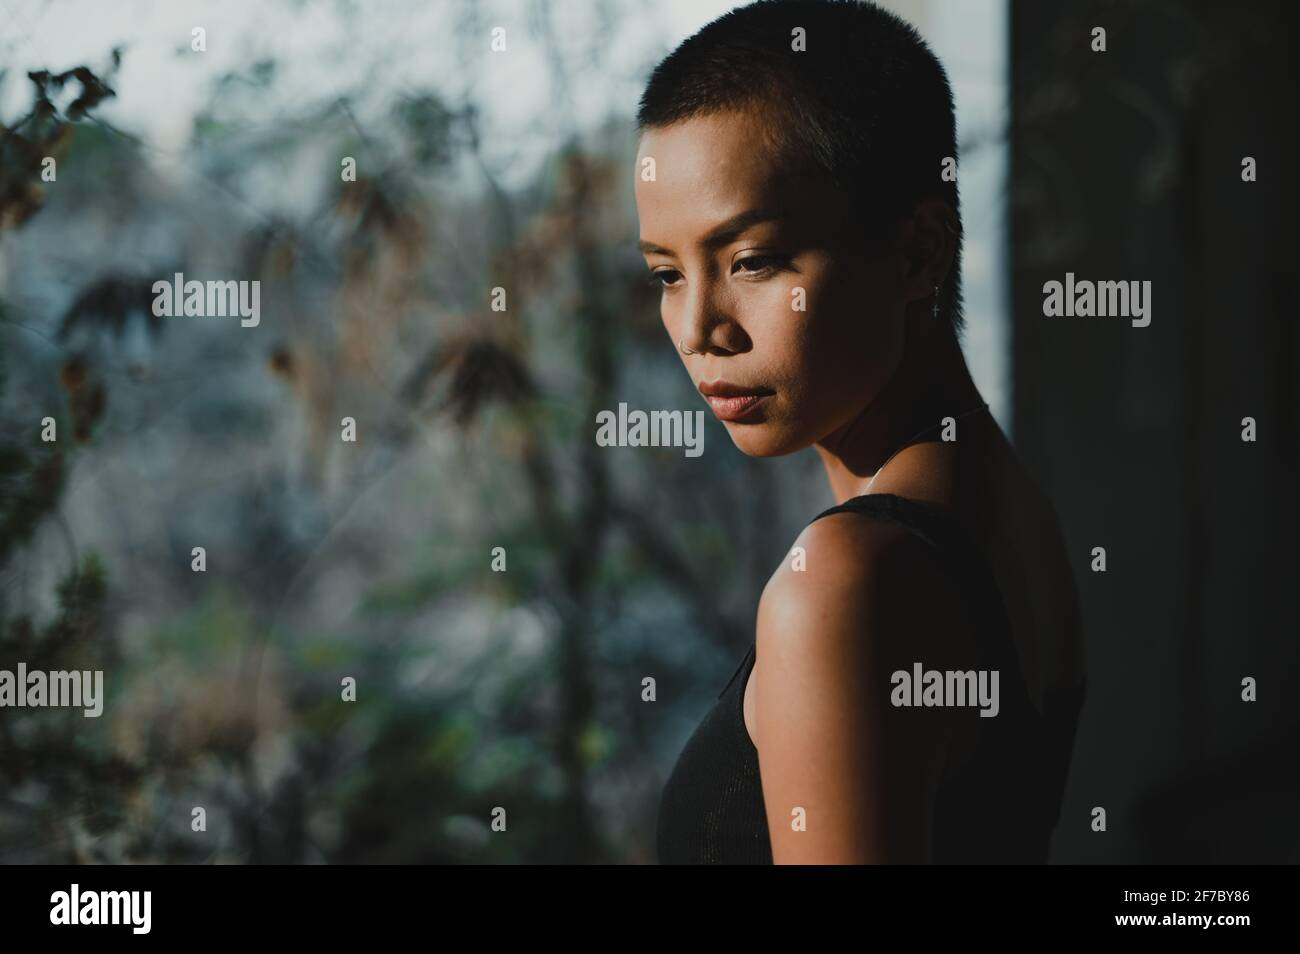 Portrait of a young short hair Asian woman standing by a big window looking down, with trees out of focus in the background. Stock Photo